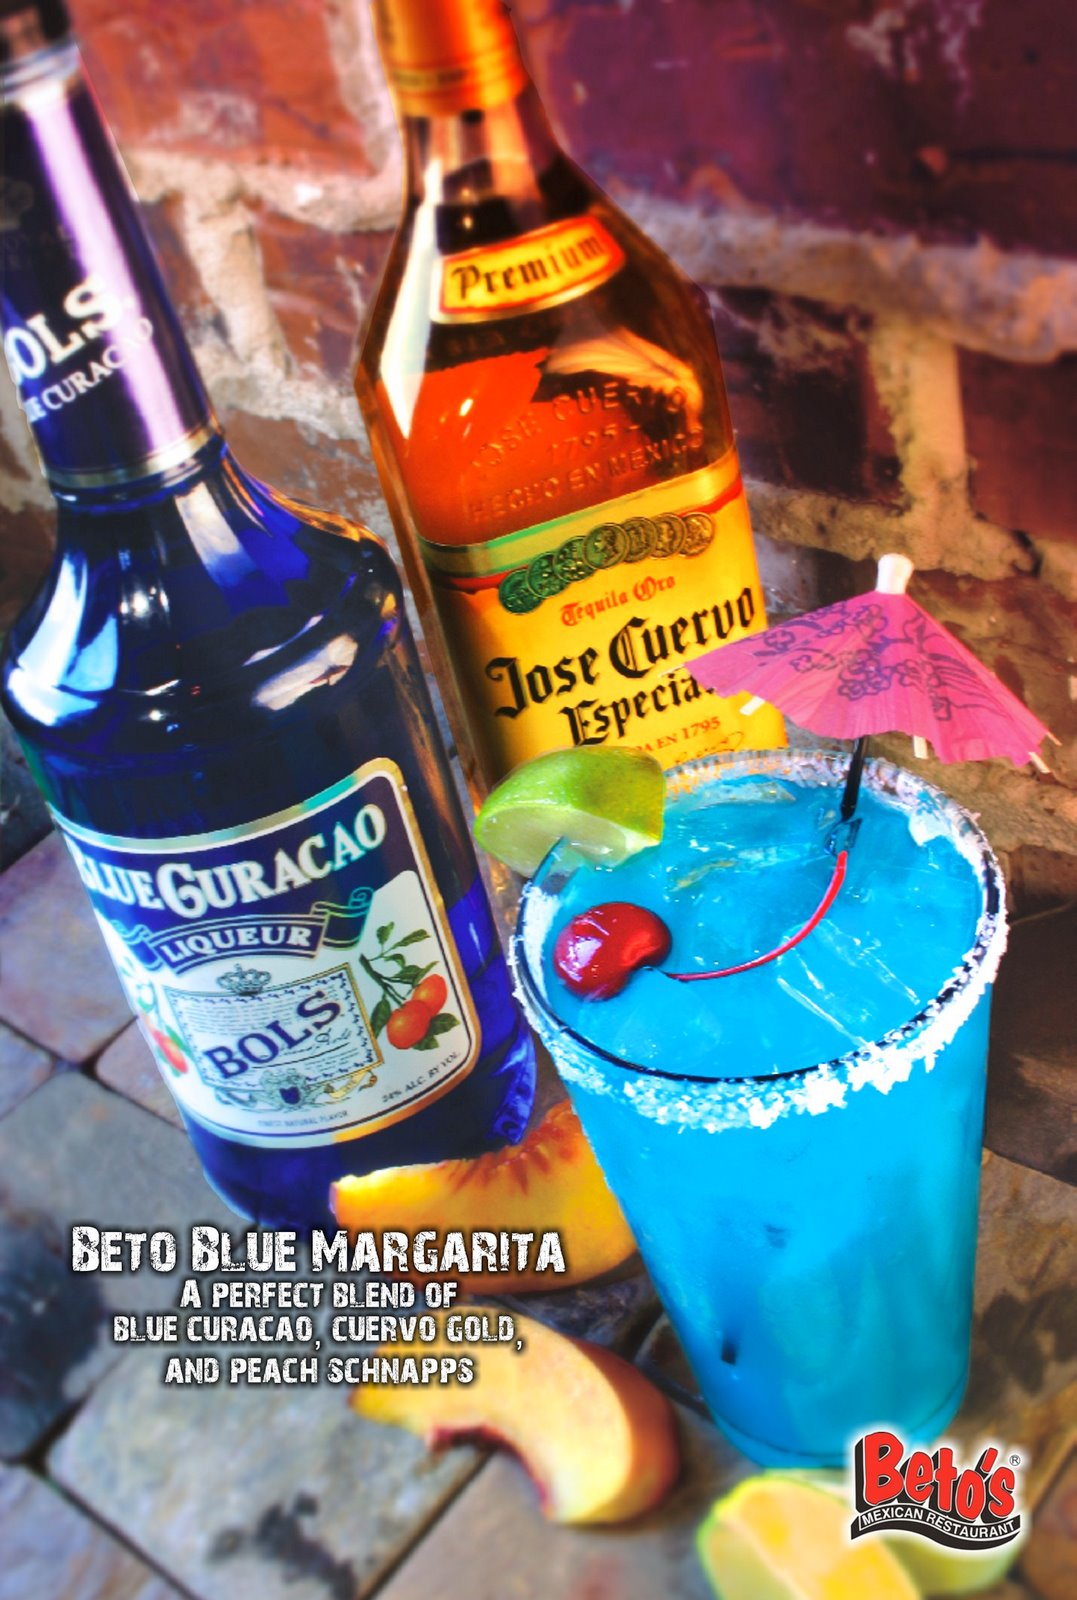 Beto Blue Margarita